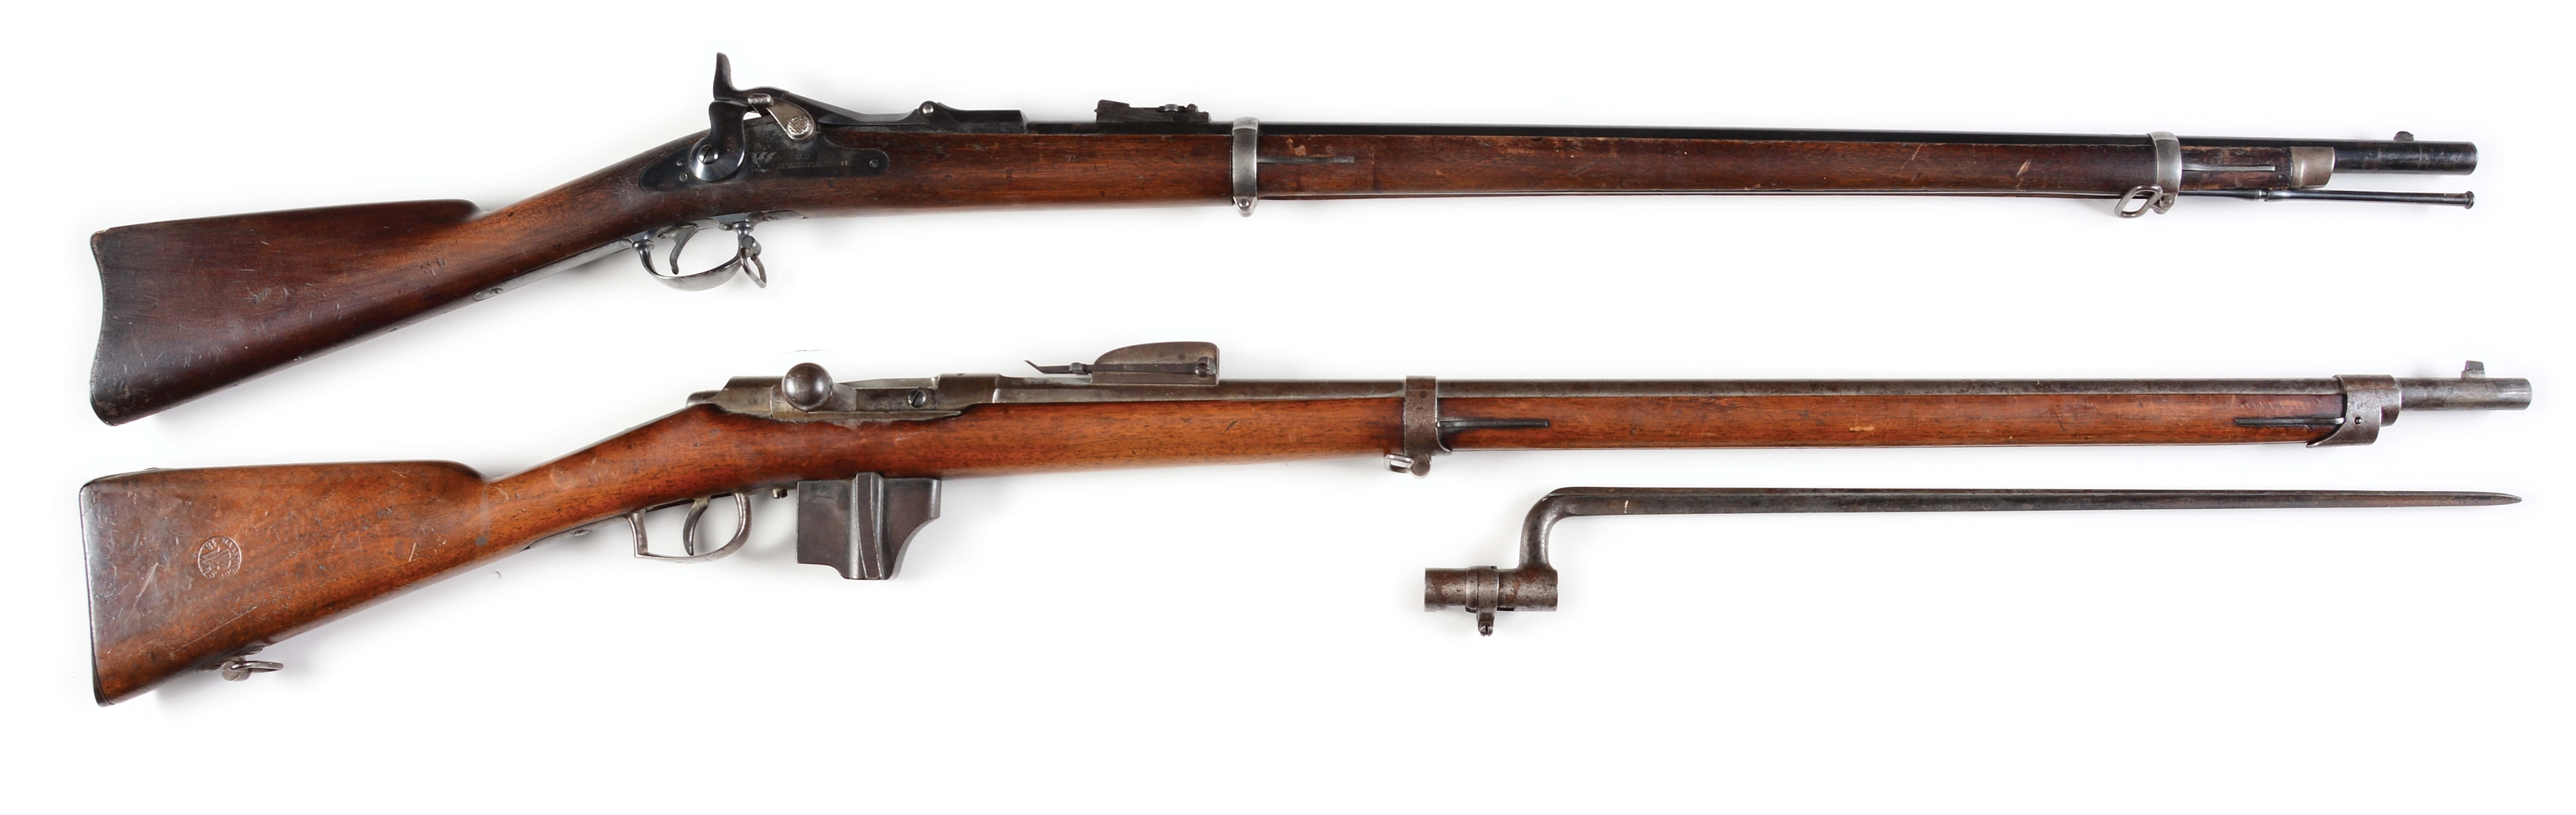 (A) LOT OF TWO: SPRINGFIELD MODEL 1873 TRAPDOOR AND DUTCH BEAUMONT RIFLES.